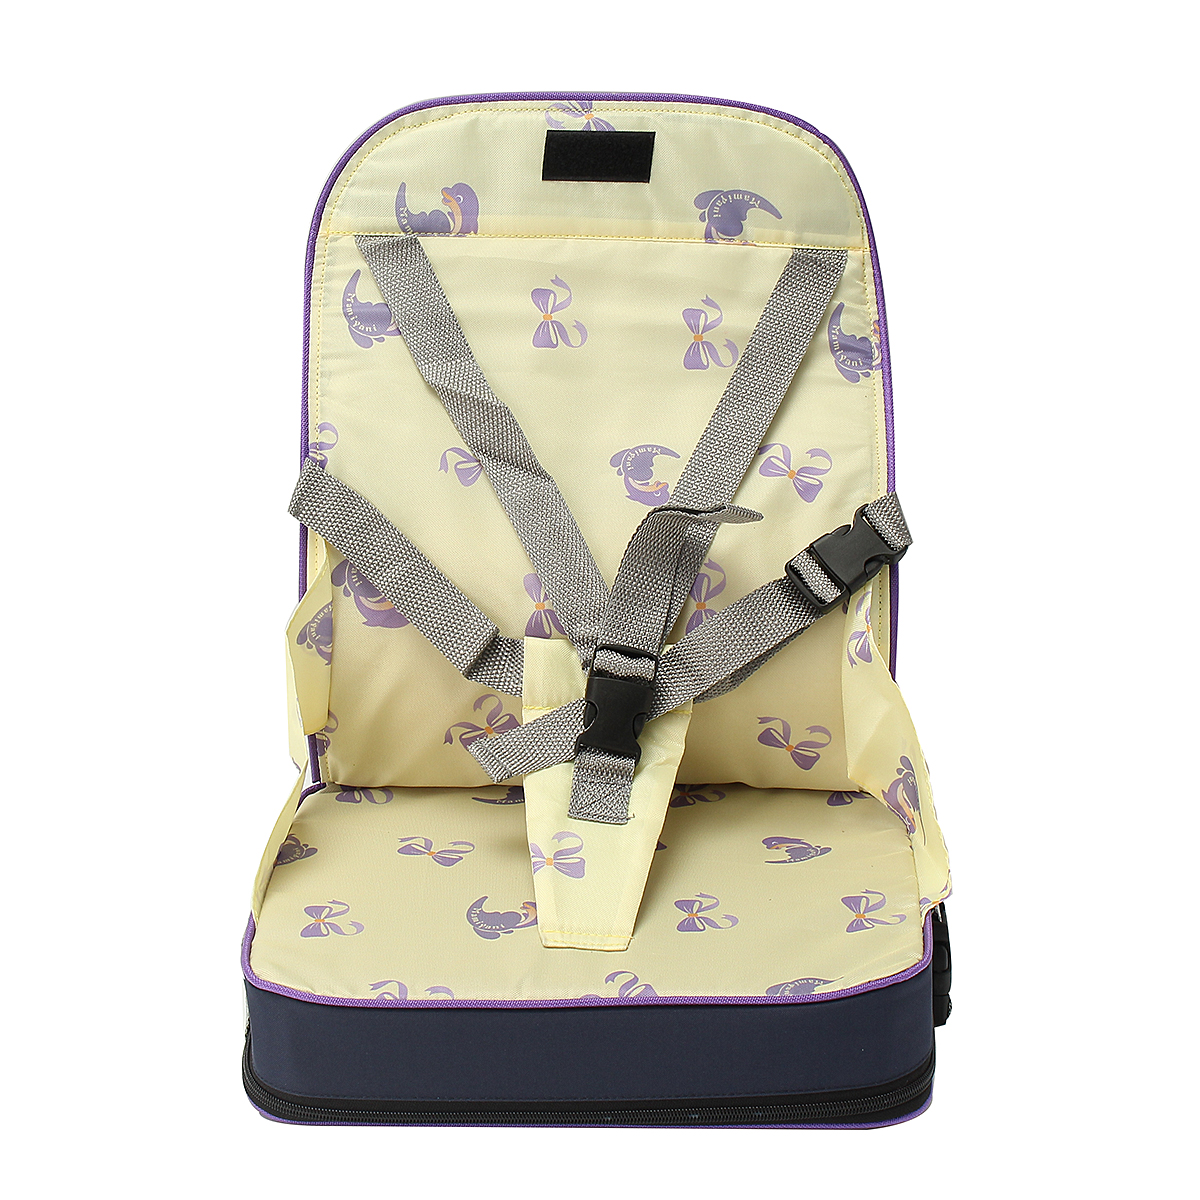 Toddler Foldable High Chair Booster Seat Dining Feeding Chair With Harness Safety Travel Dine Out Folding for Baby Baby Walkers & Bouncers Kids Portable